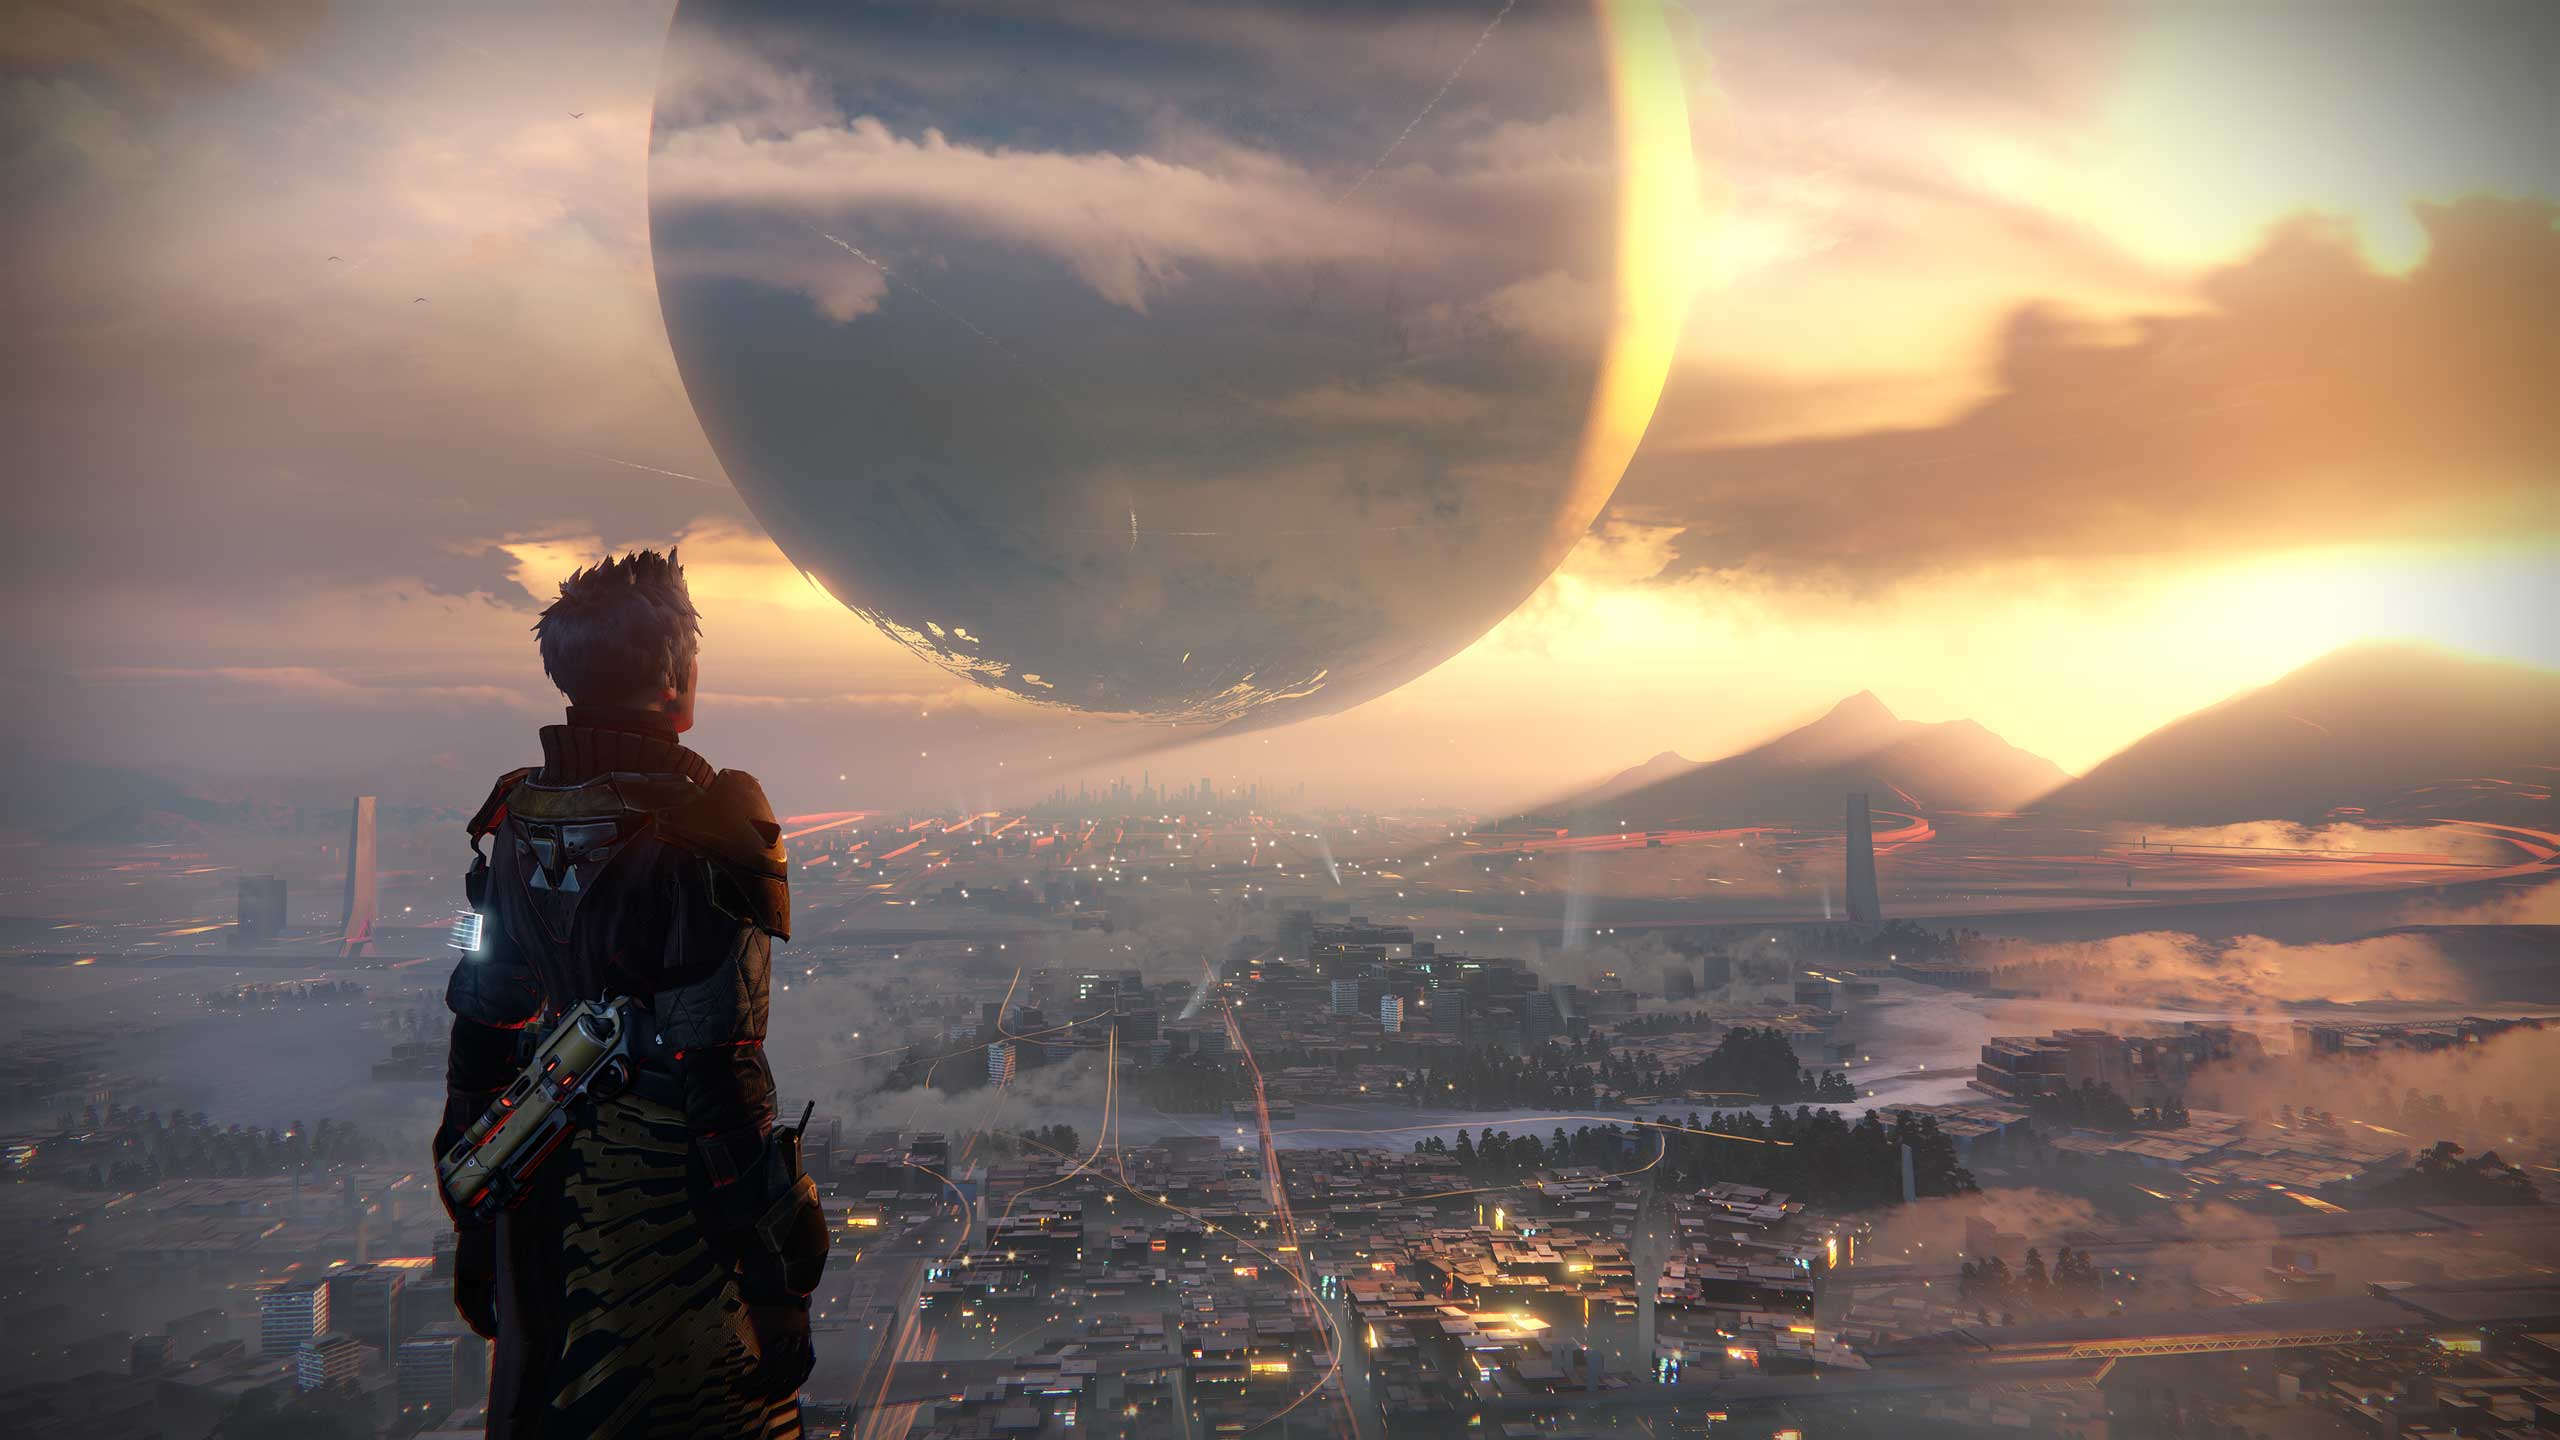 Destiny                                          Built from scratch by ex-Halo studio Bungie, Destiny's game engine was designed to scale across the next decade, says the studio.